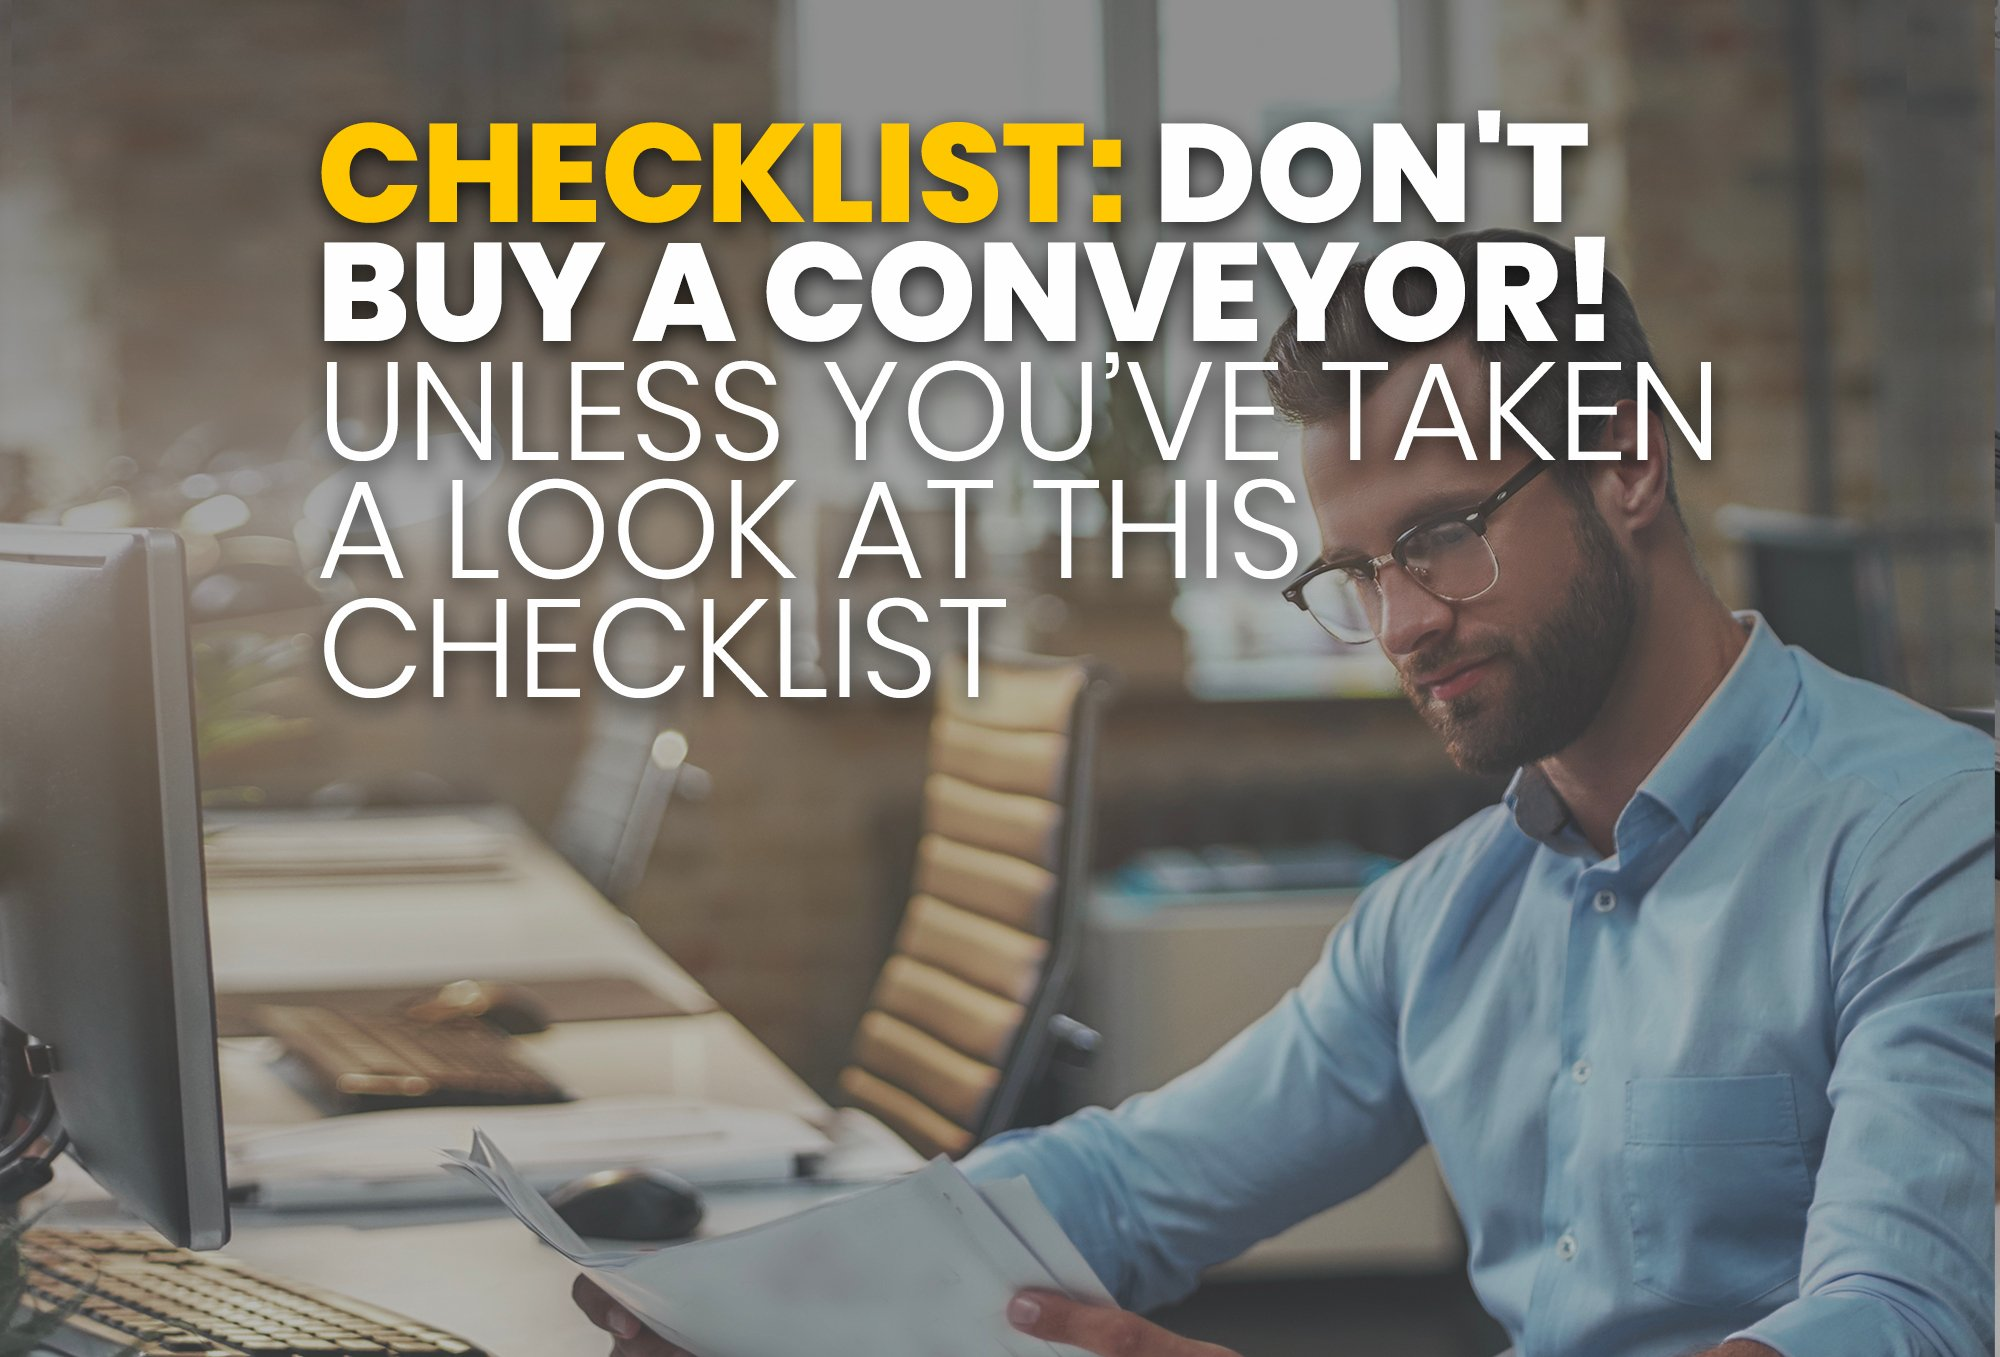 Resource - DONT BUY A CONVEYOR! (Unless You've Taken a Look at this Checklist)